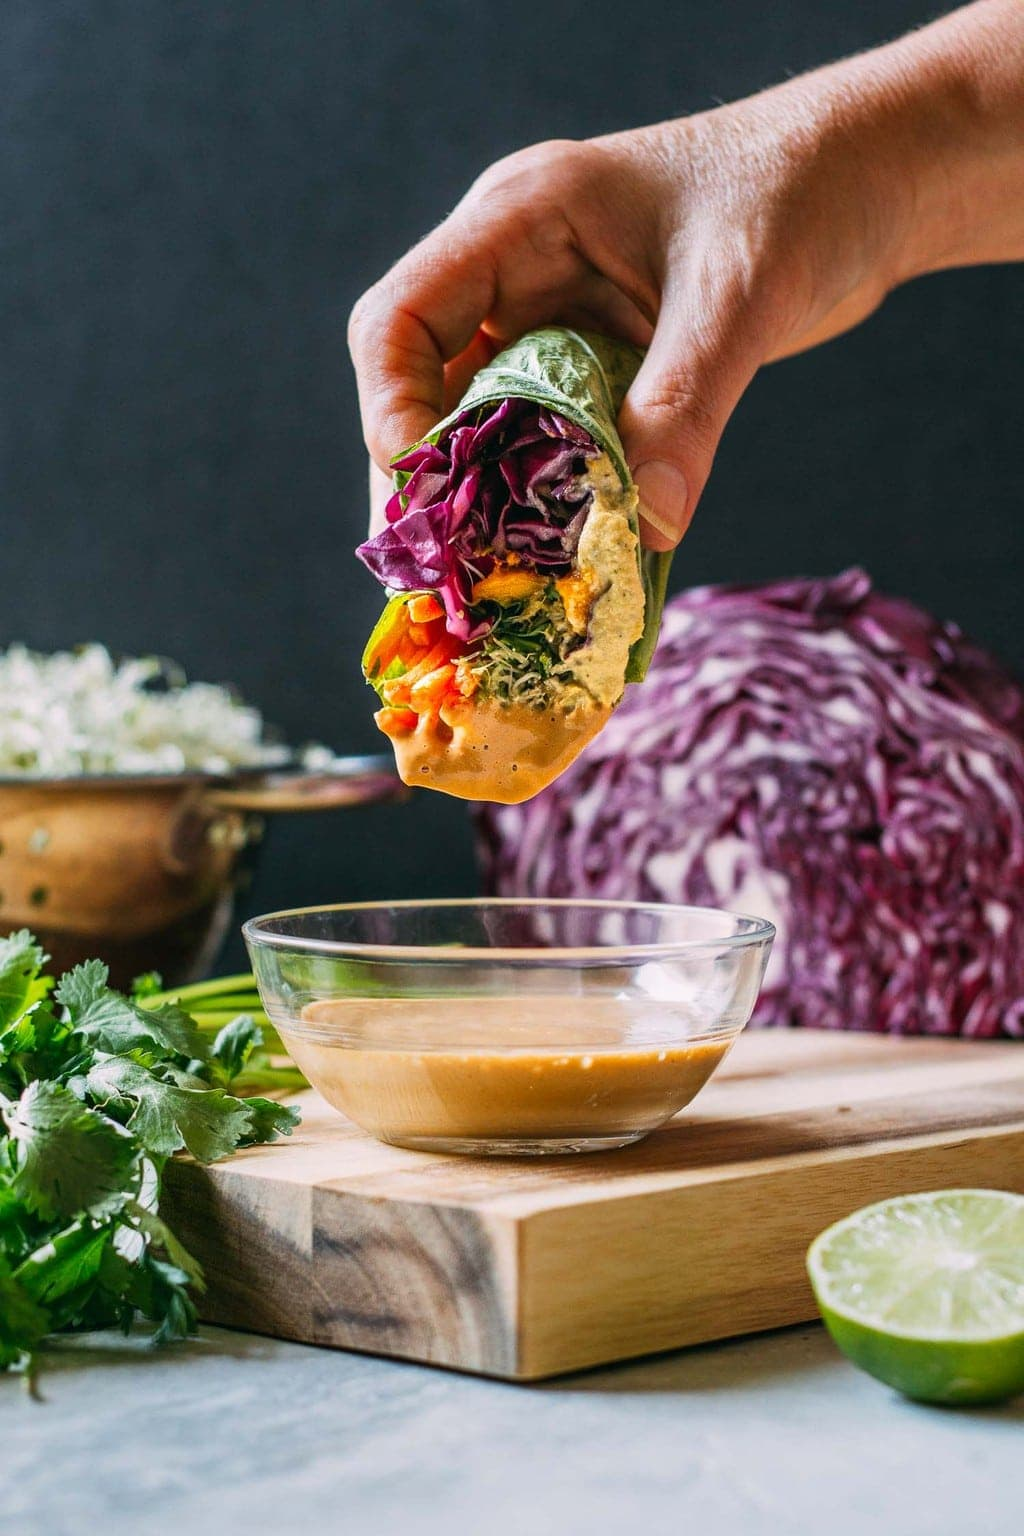 Hand dipping a Mango cashew collard wrap into peanut sauce on a cutting board